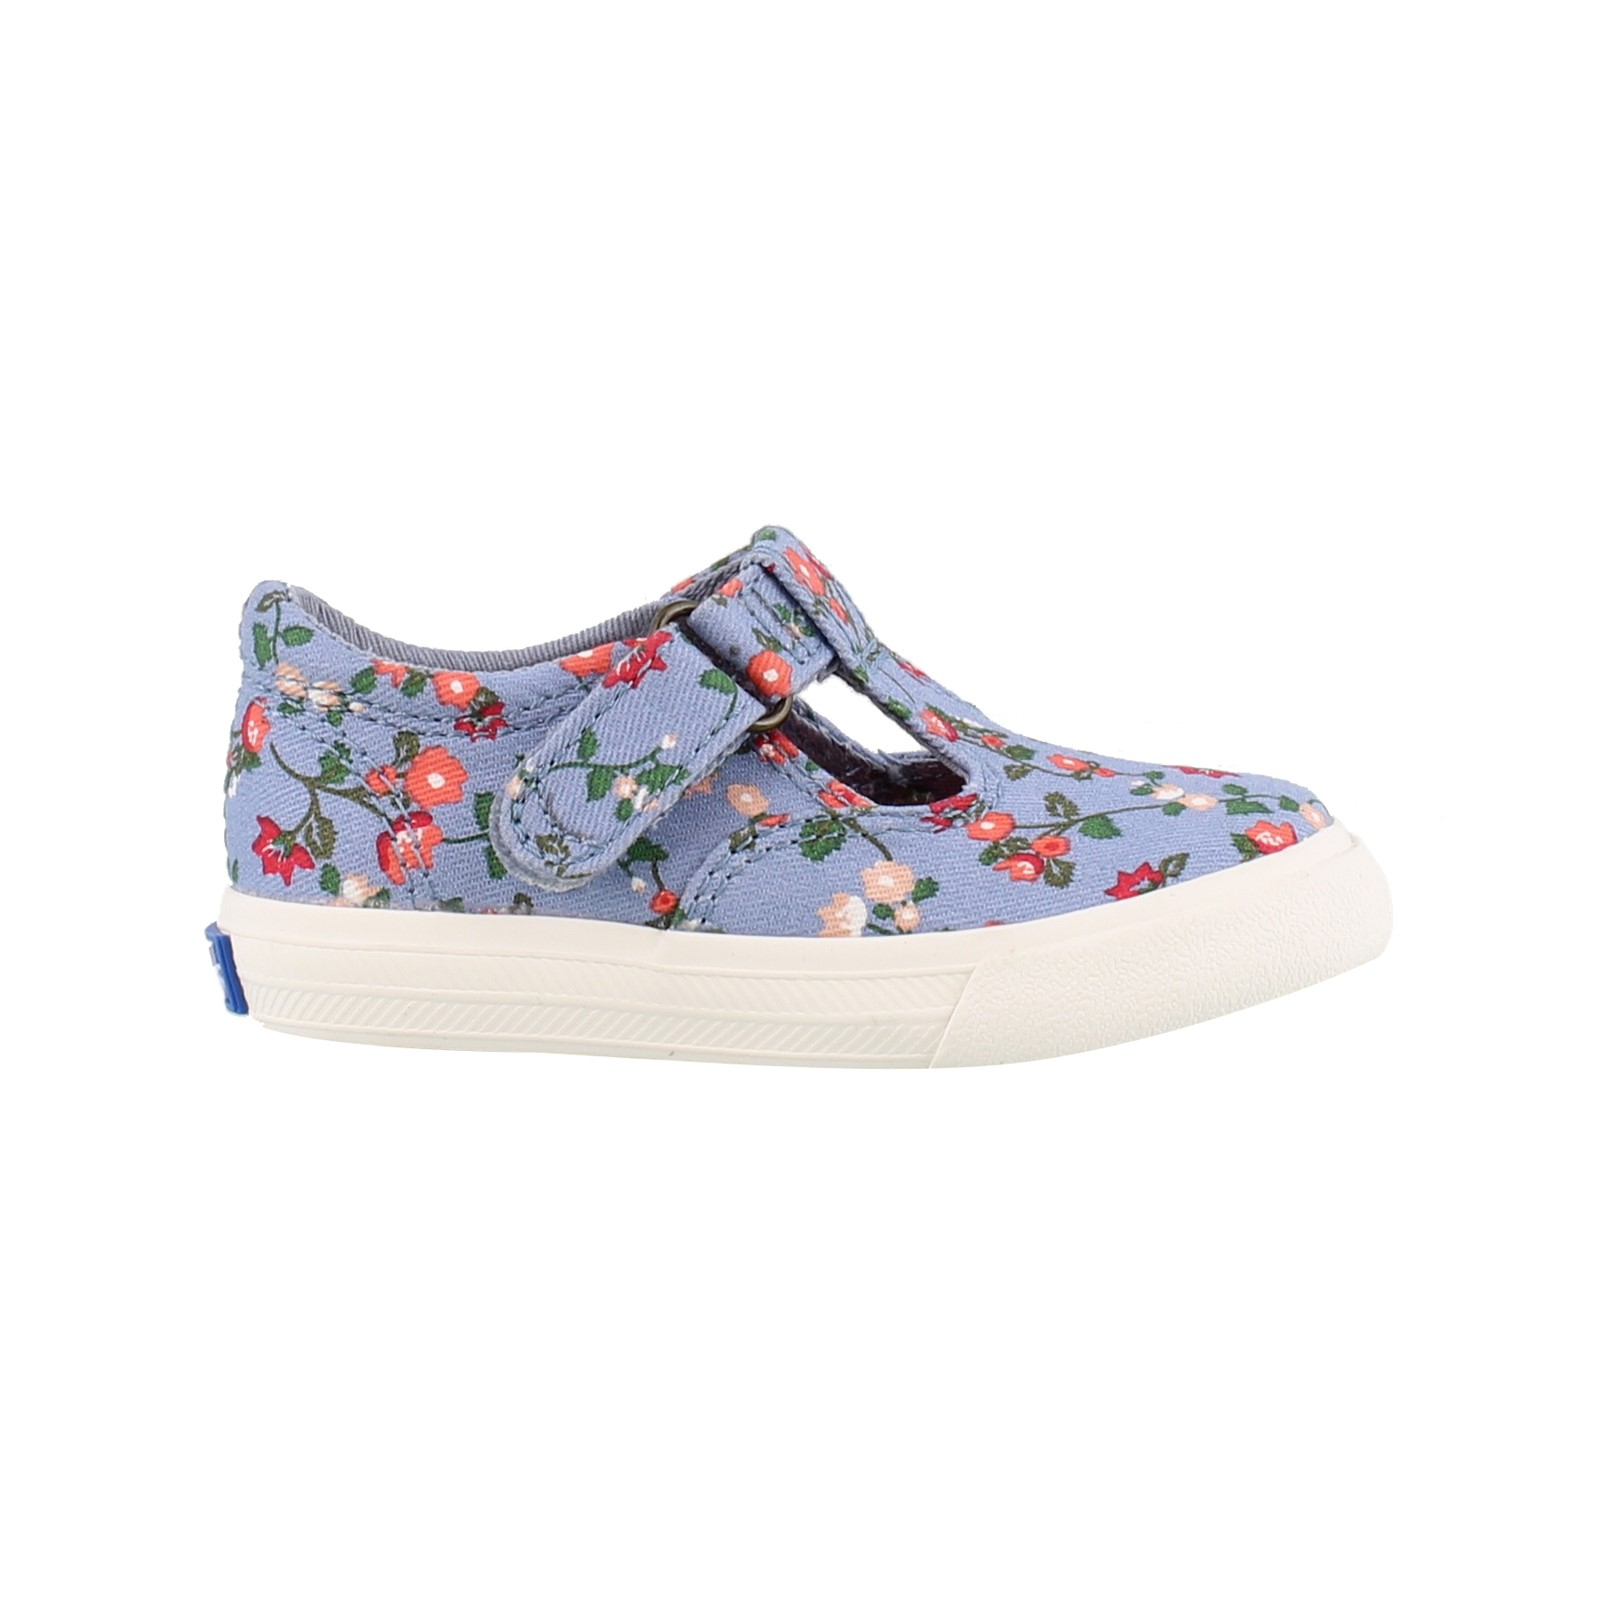 Infant's KEDS KIDS, DAPHNE SLIP ON SHOE